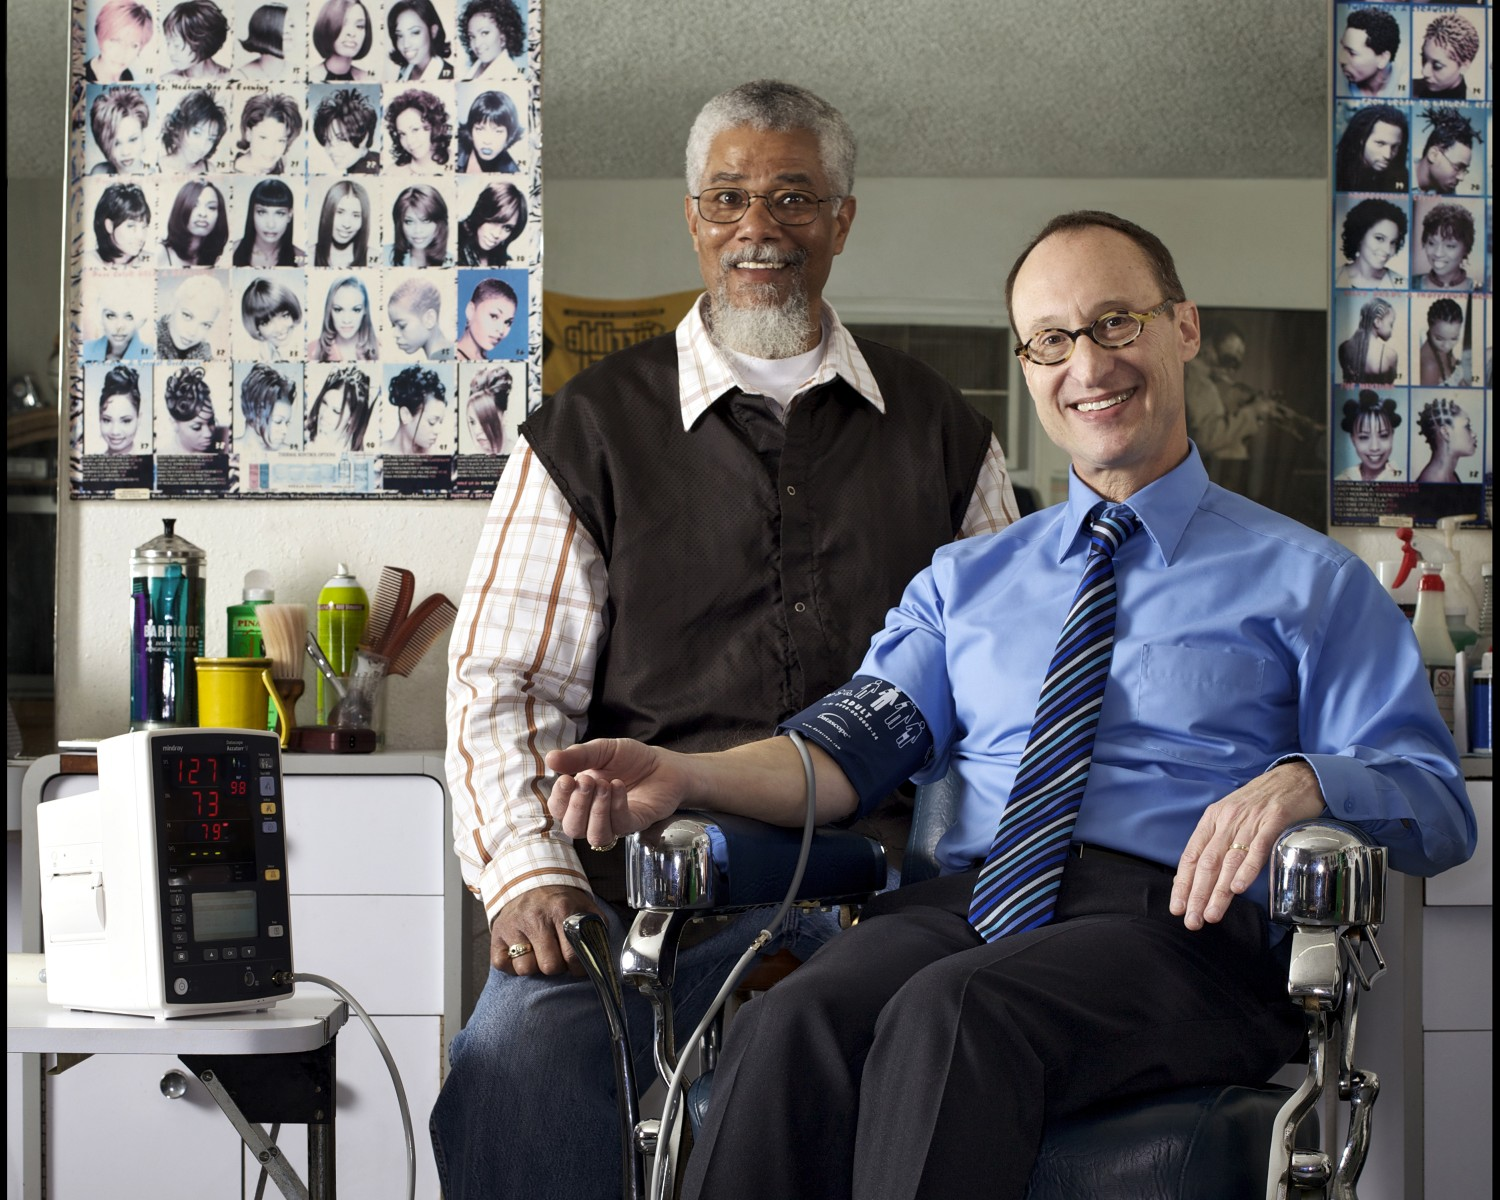 During a barbershop hypertension study, barber Wally Riddle took the blood pressure of Ronald G. Victor, MD.  Photo by Cedars-Sinai.